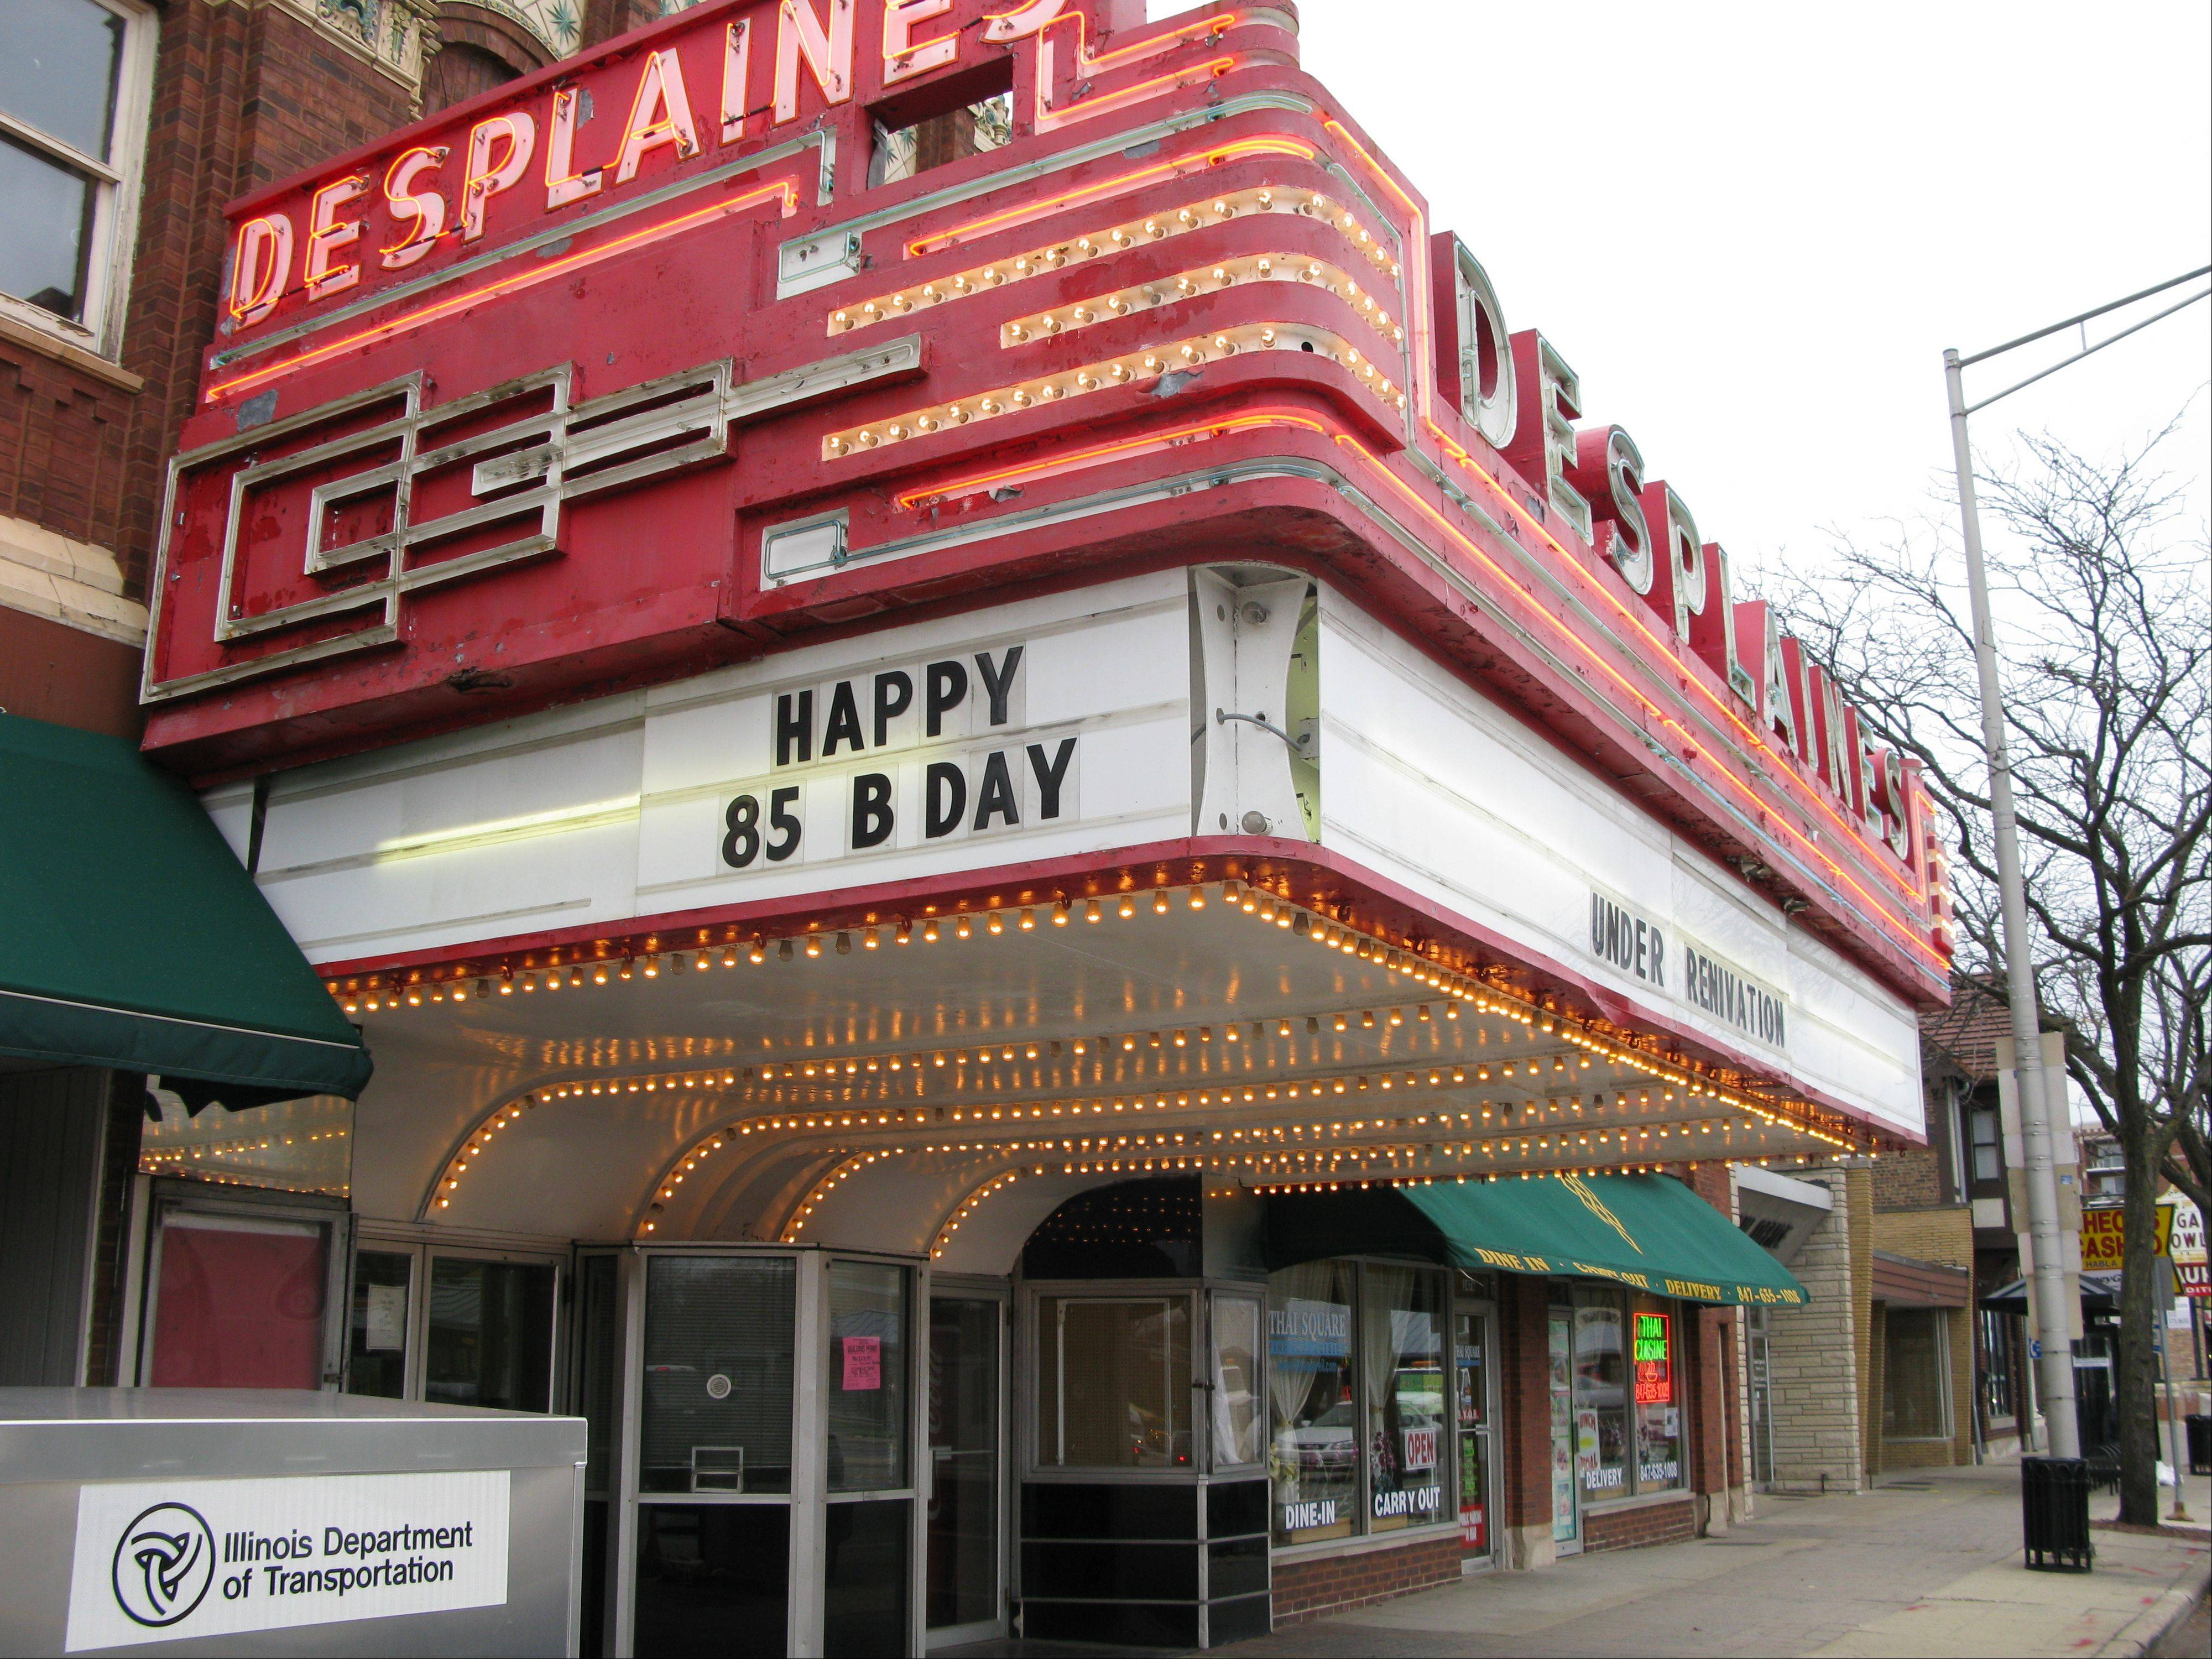 Owners of the historic downtown Des Plaines Theater received roughly $15,000 in grants this year from the city's facade rehabilitation program to help with the theater's restoration.